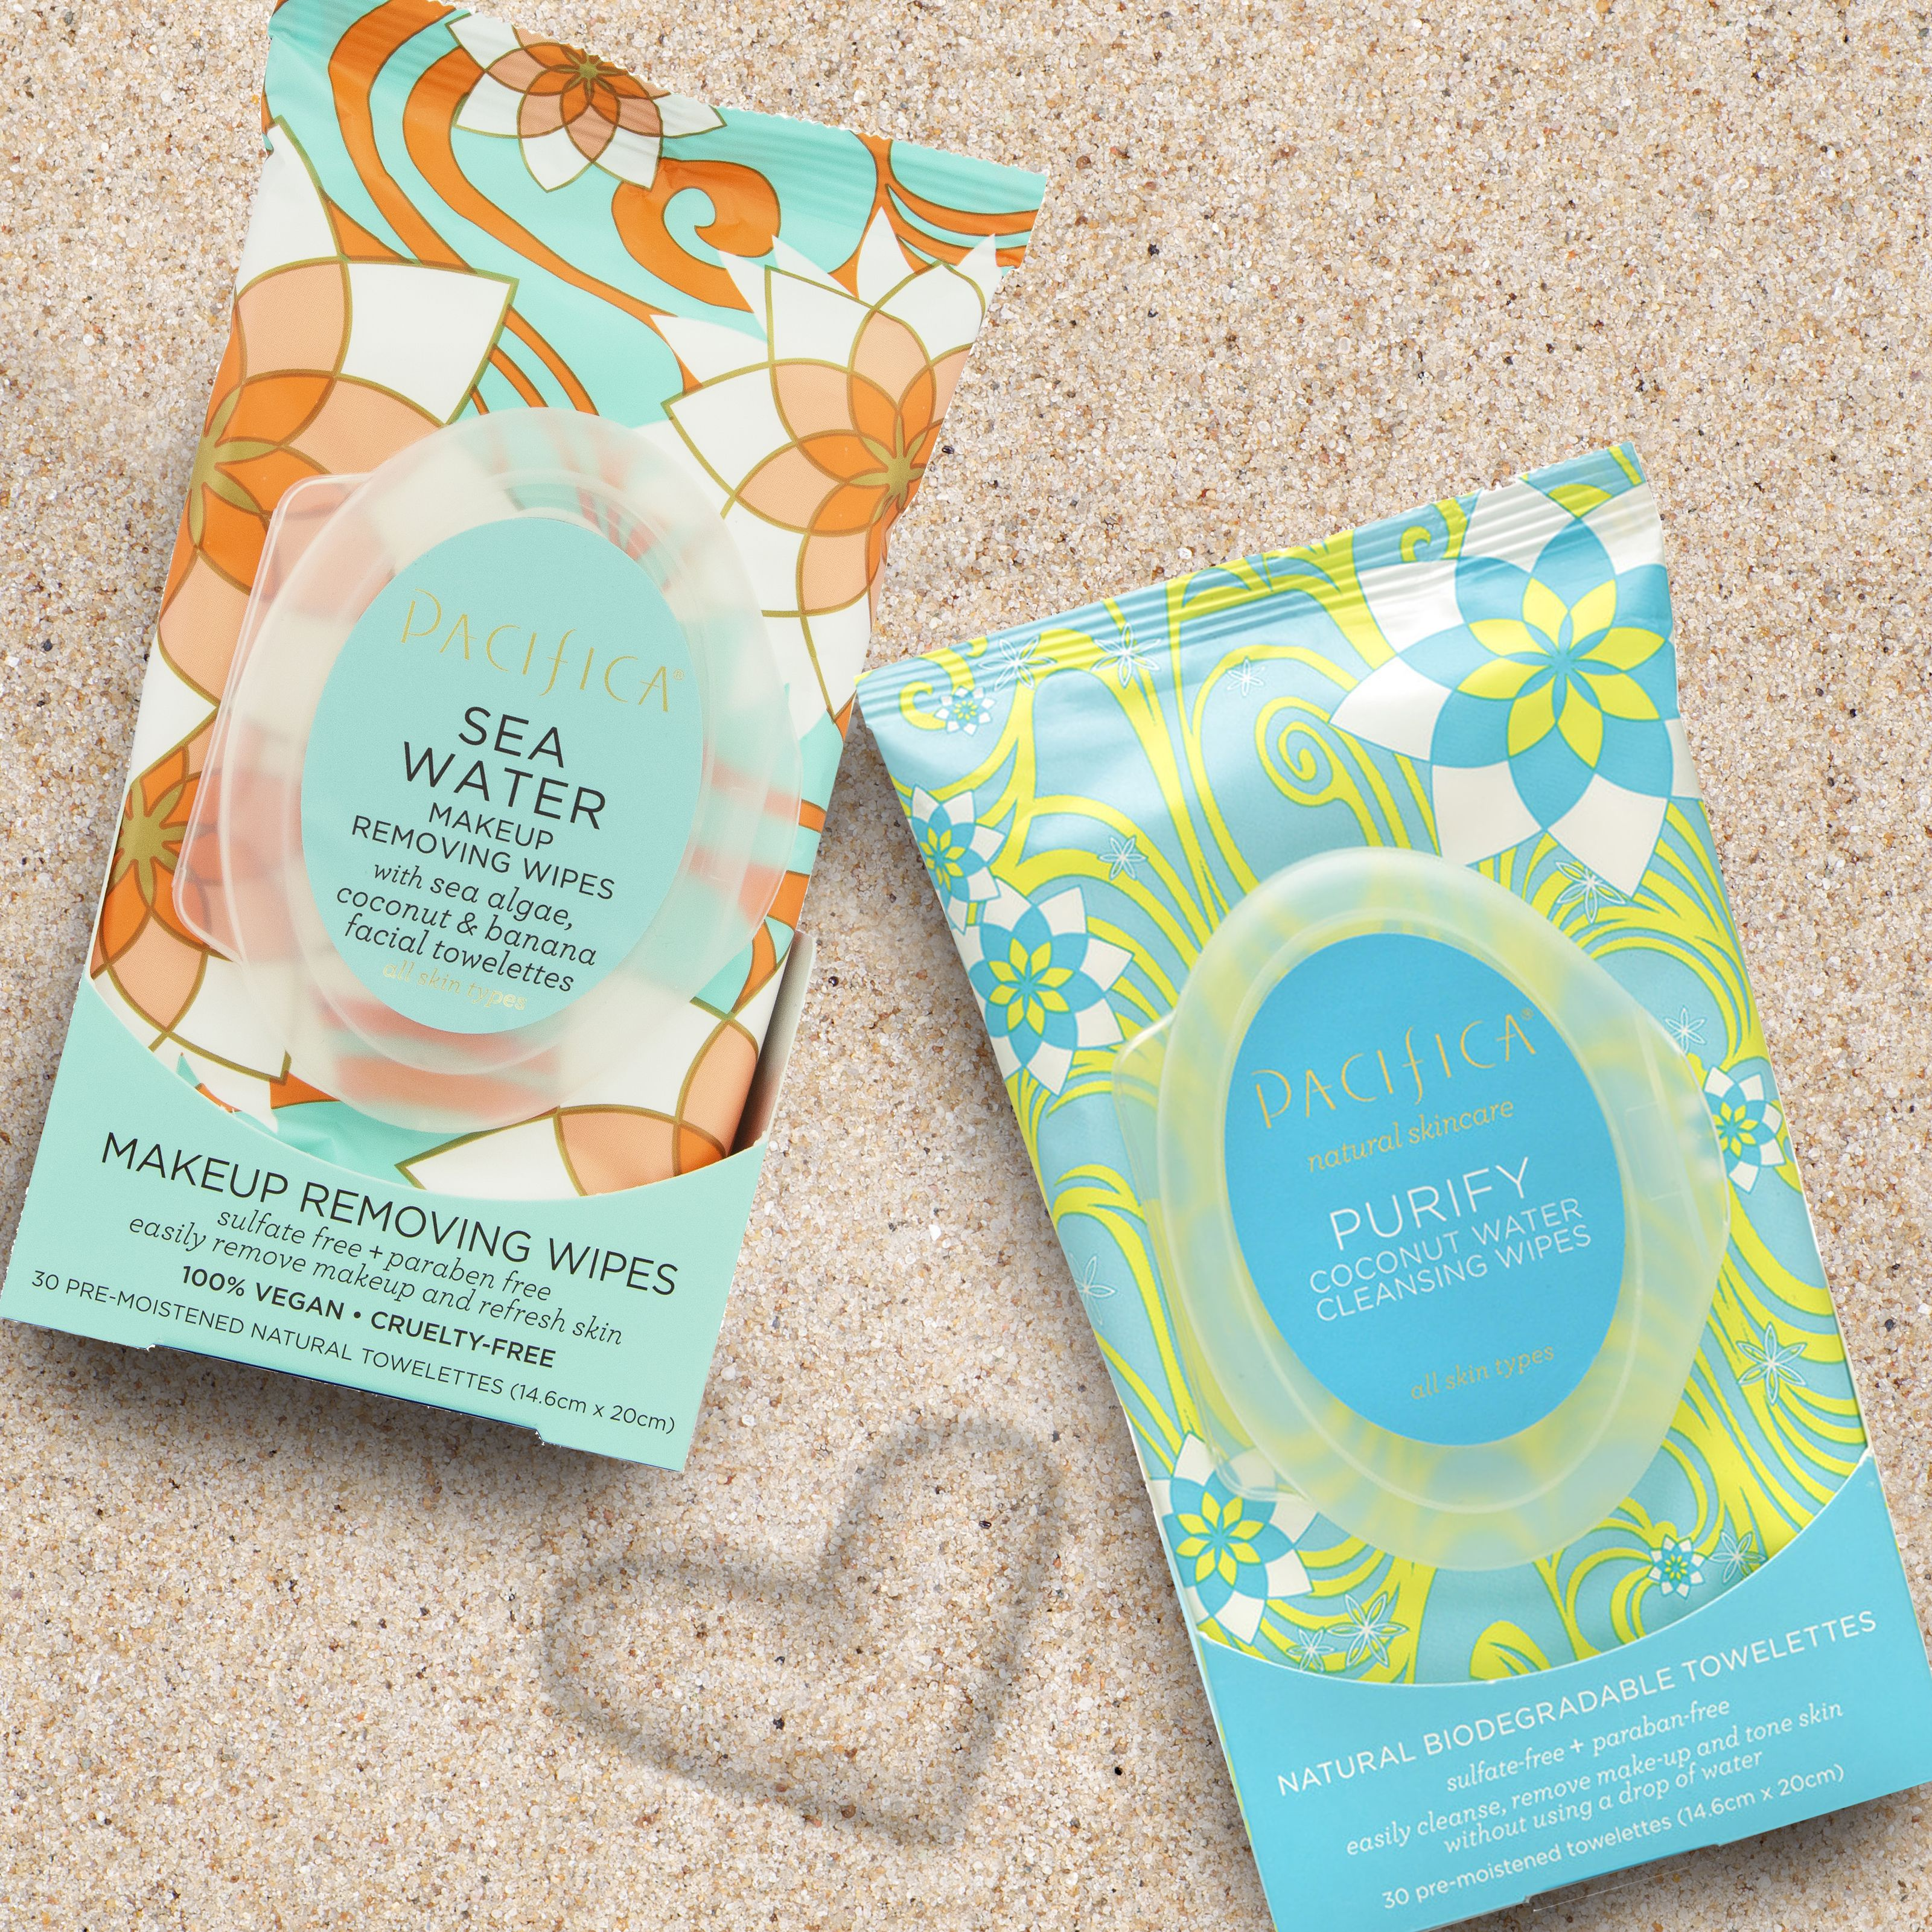 Pin by Pacifica Beauty on SKINCARE Makeup remover wipes